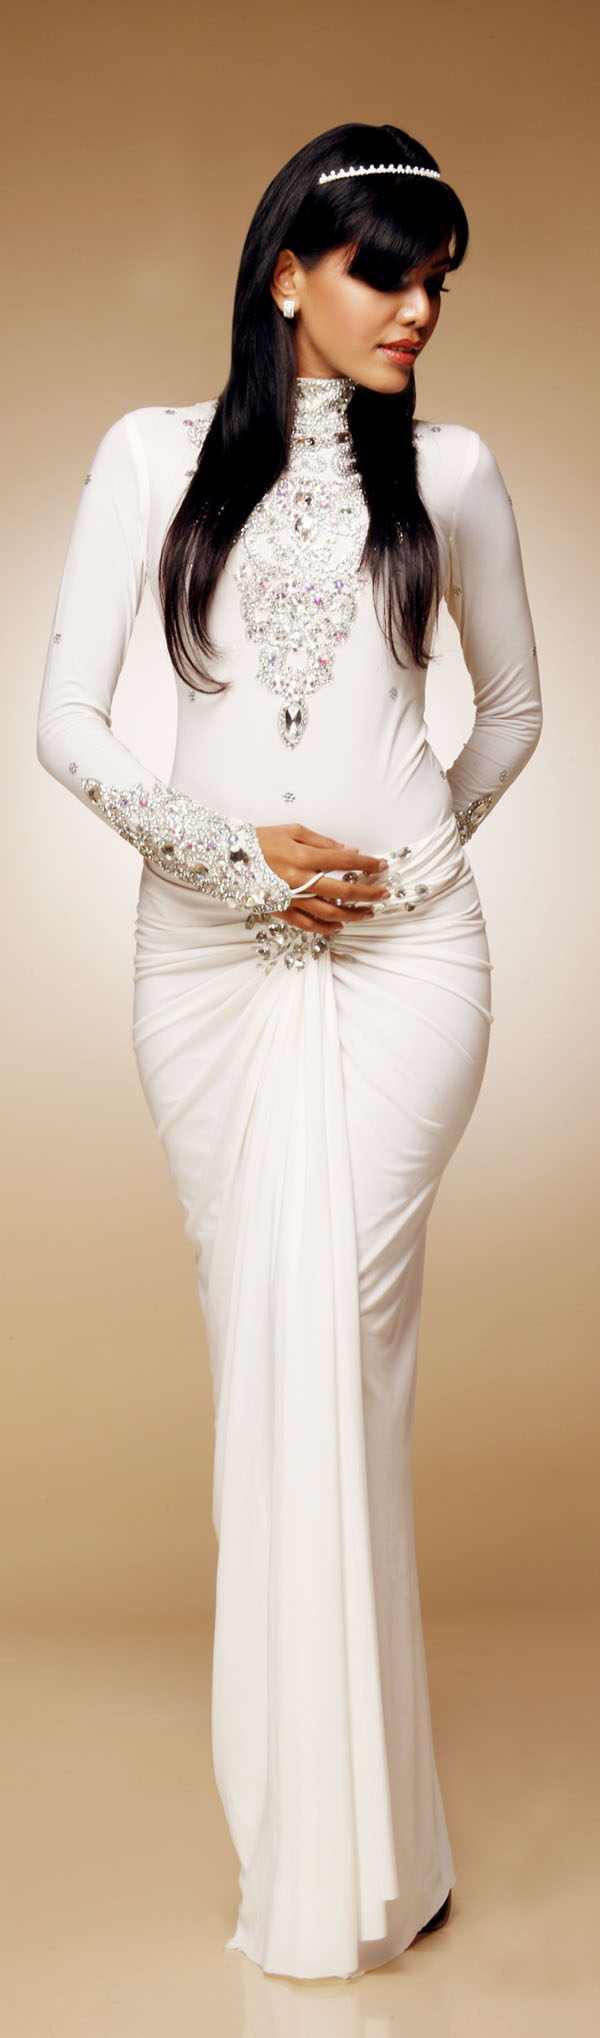 White Delight by Lemme Dress You Up, a brand owned by